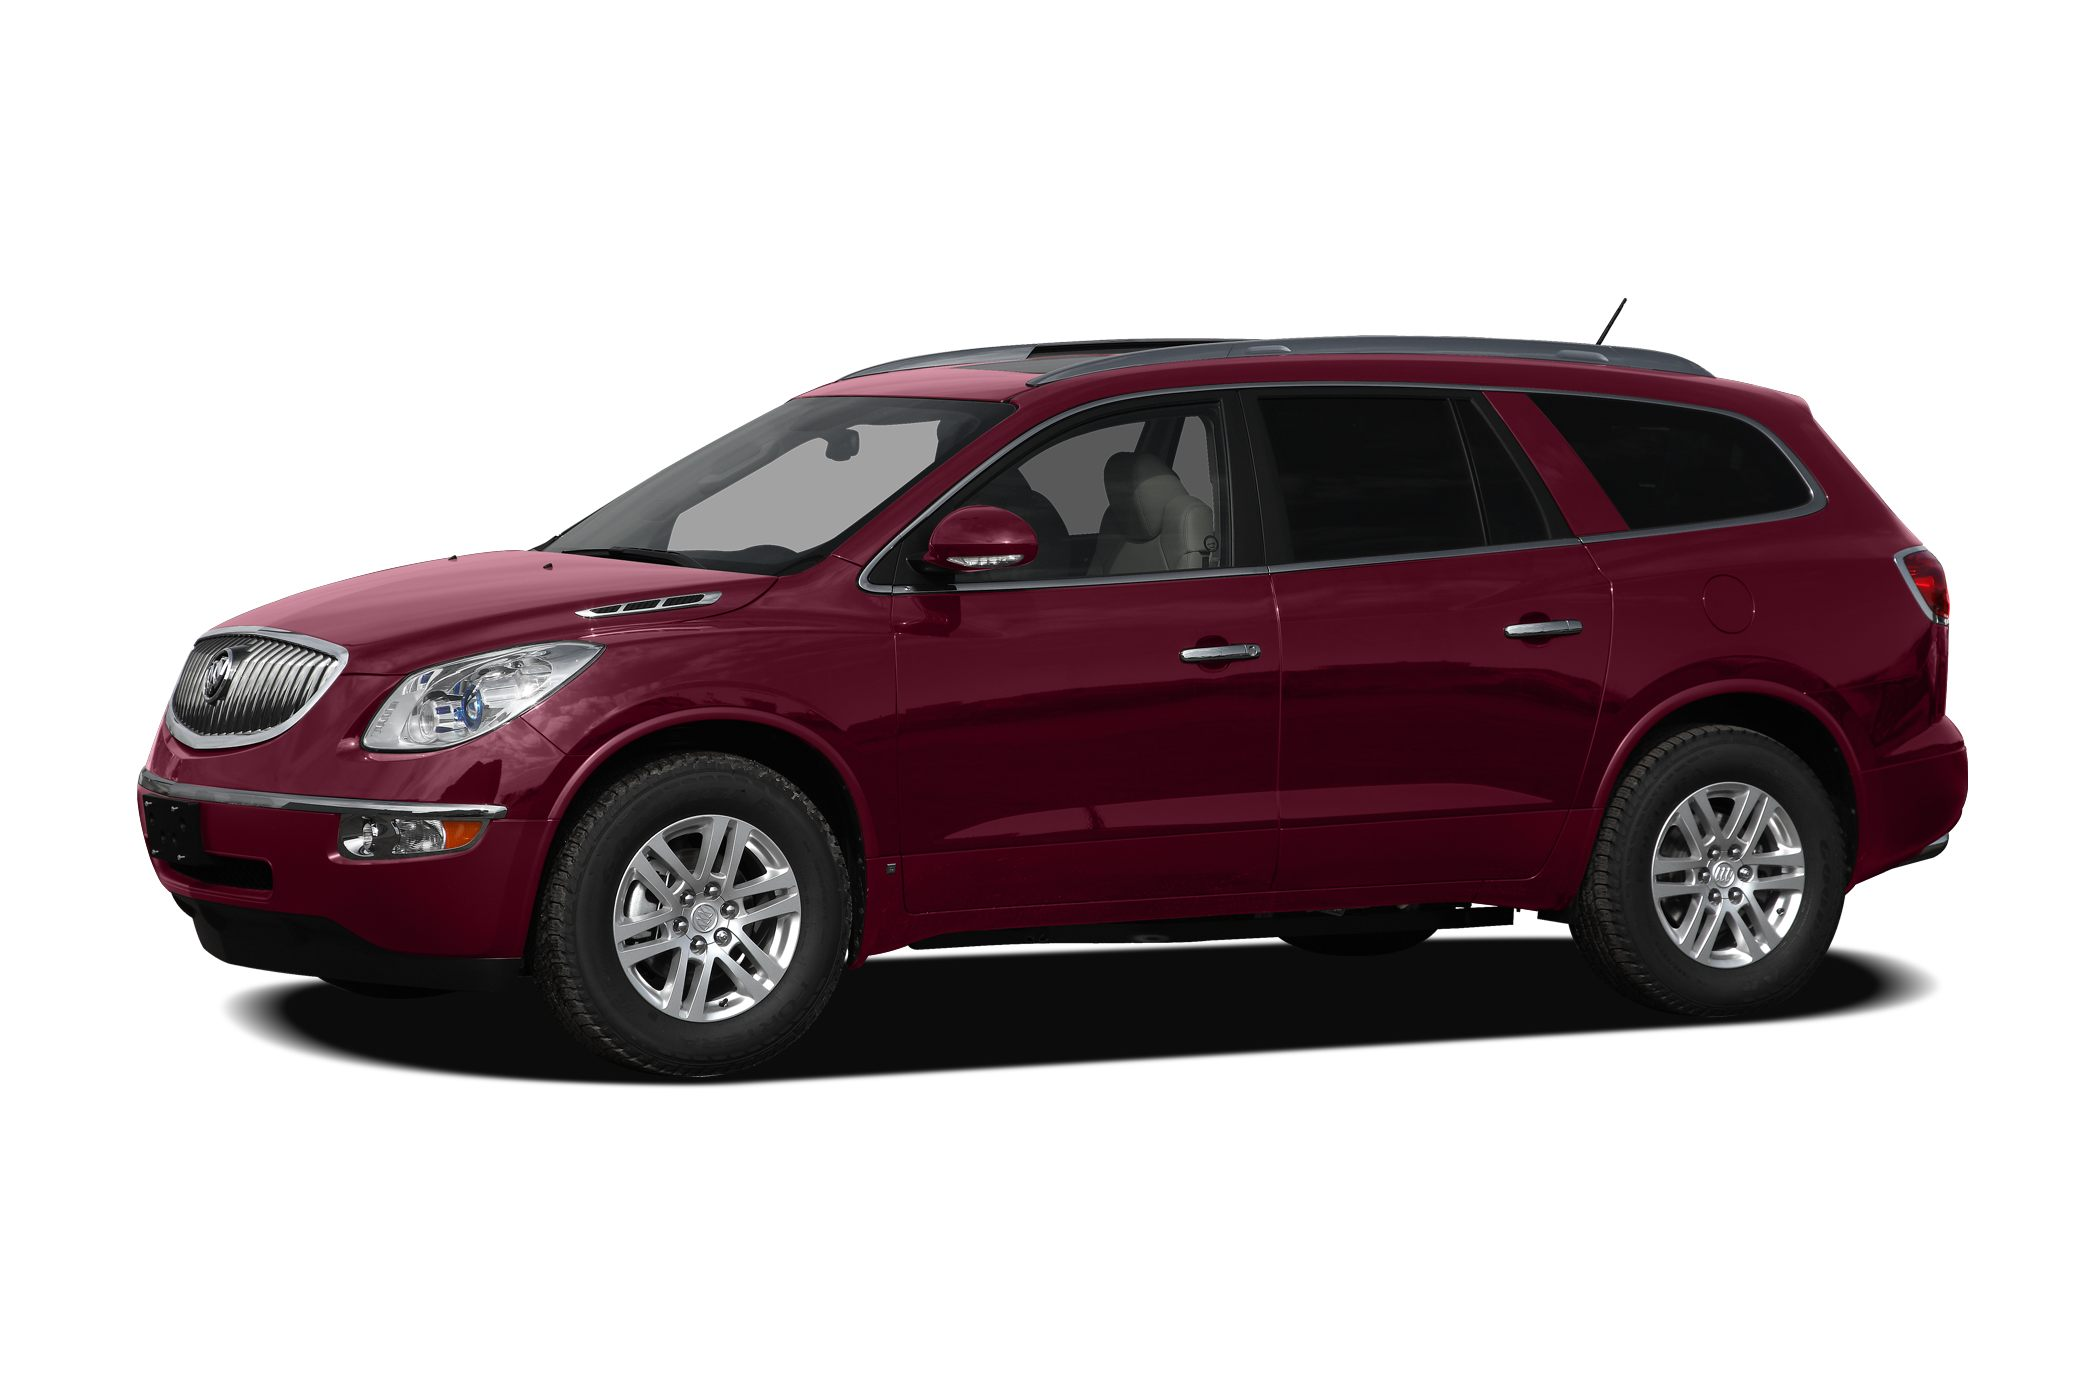 2010 Buick Enclave 1XL SUV for sale in Lebanon for $17,800 with 96,954 miles.